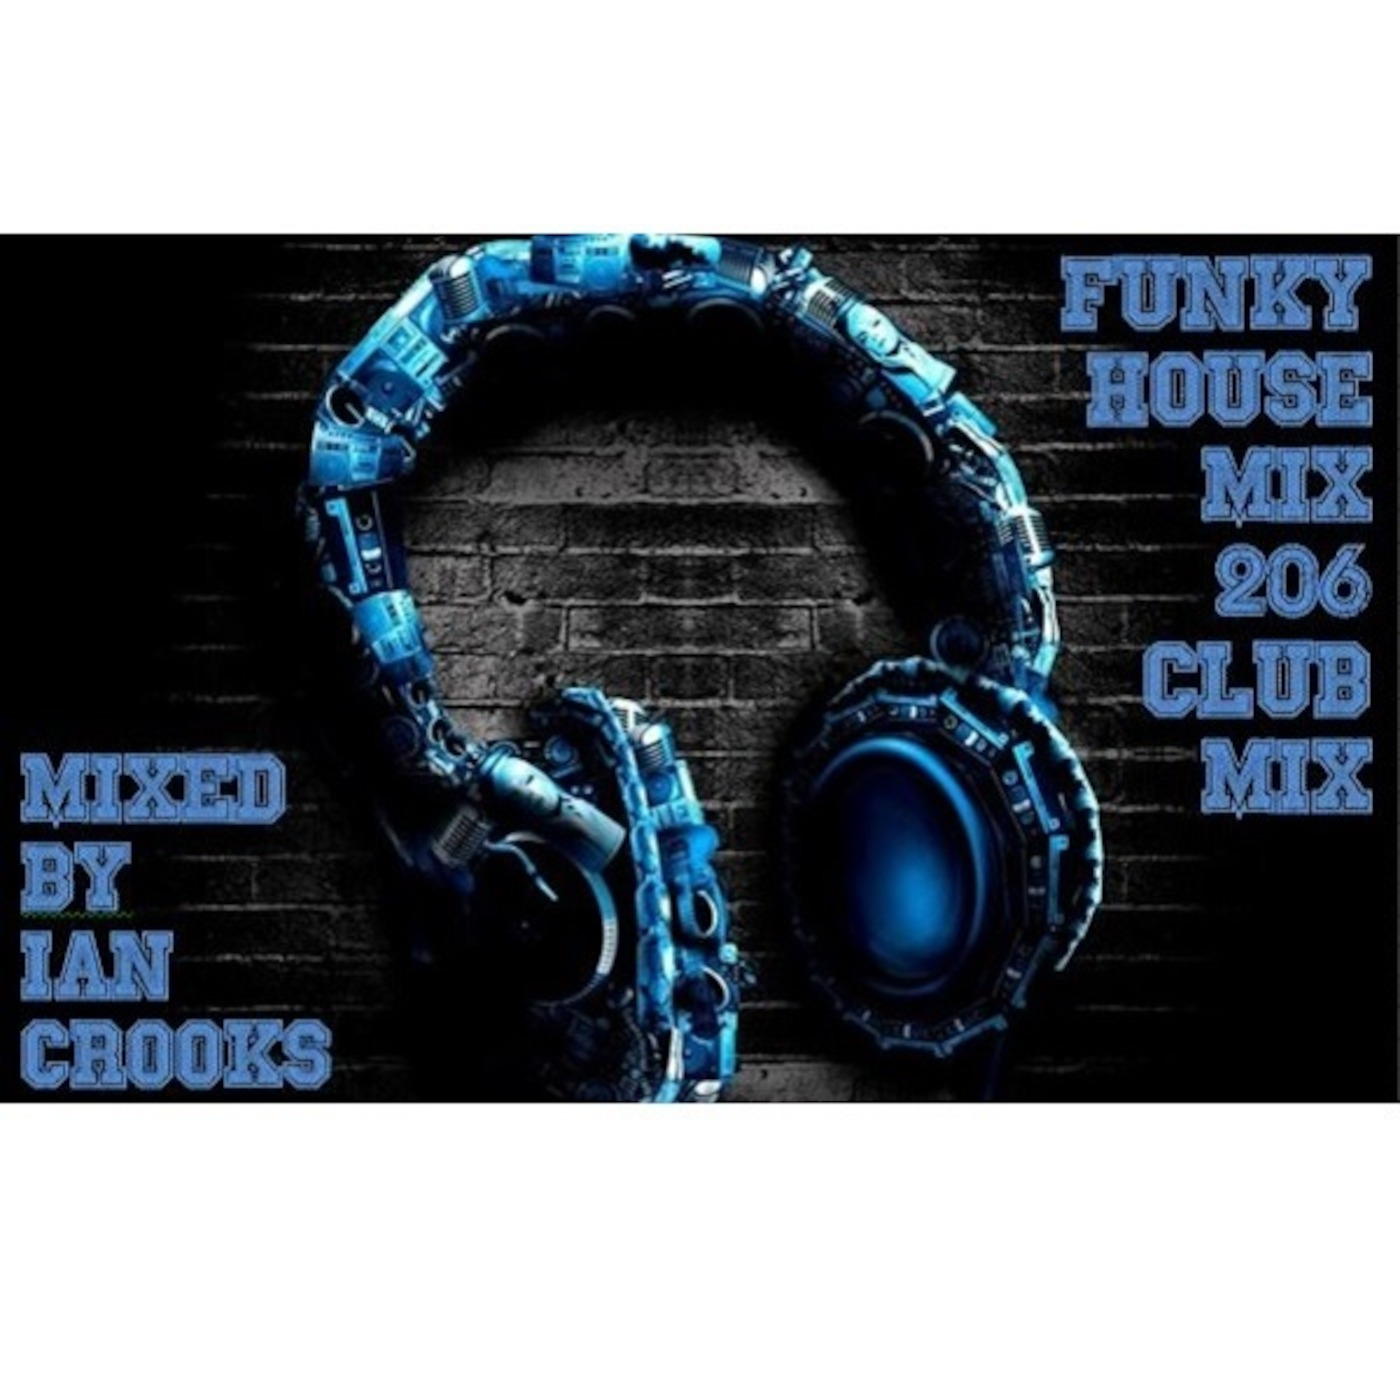 Funky house mix 206 club mix funky house mixes podcast for Funky house tracks